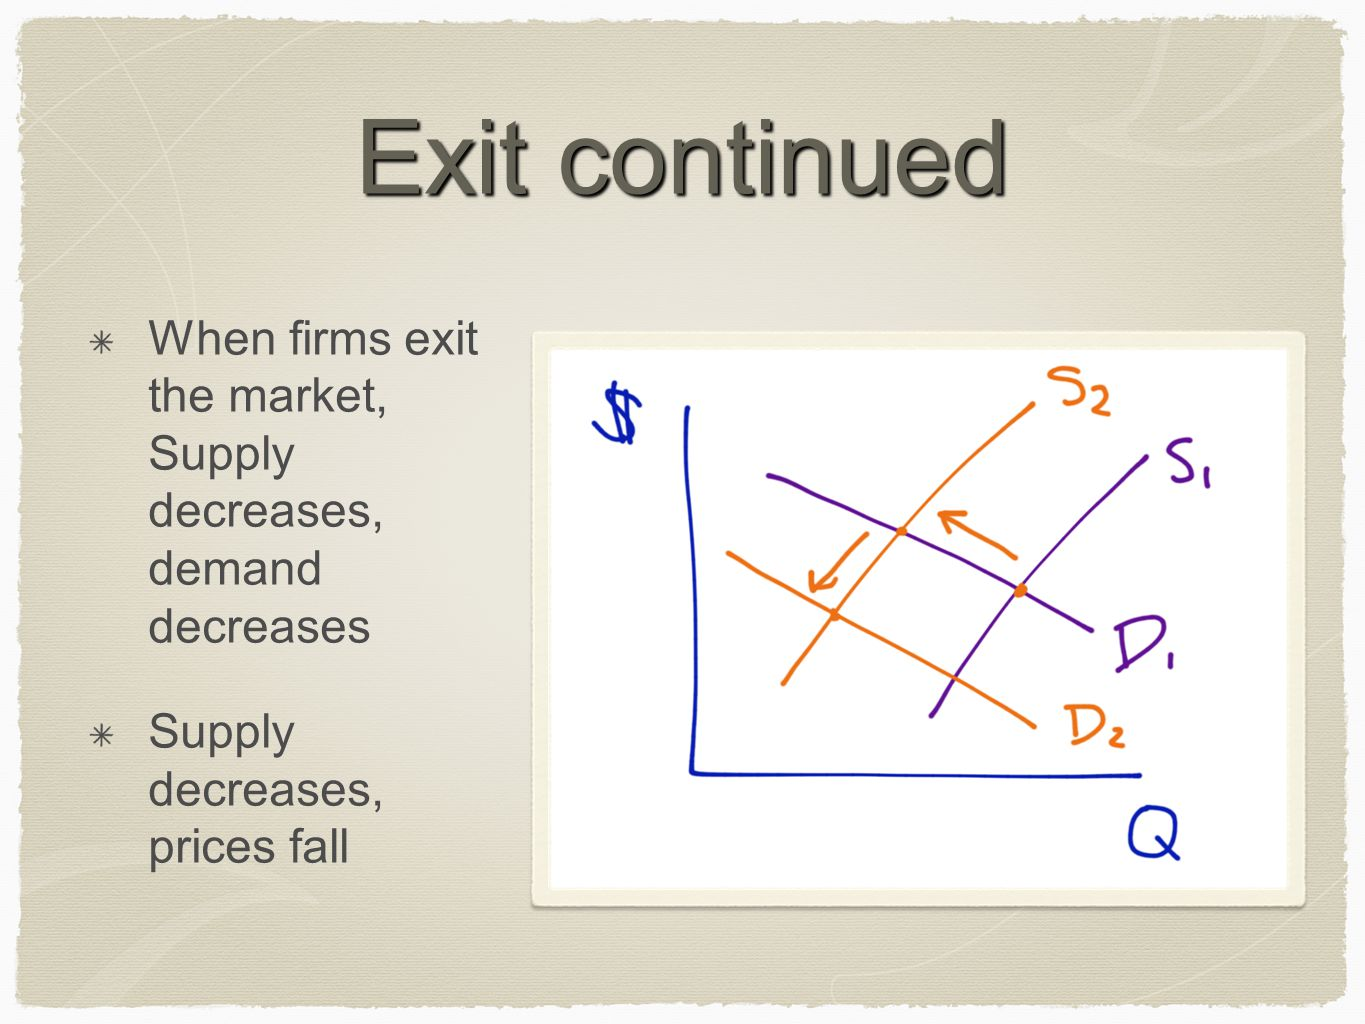 Exit continued When firms exit the market, Supply decreases, demand decreases.